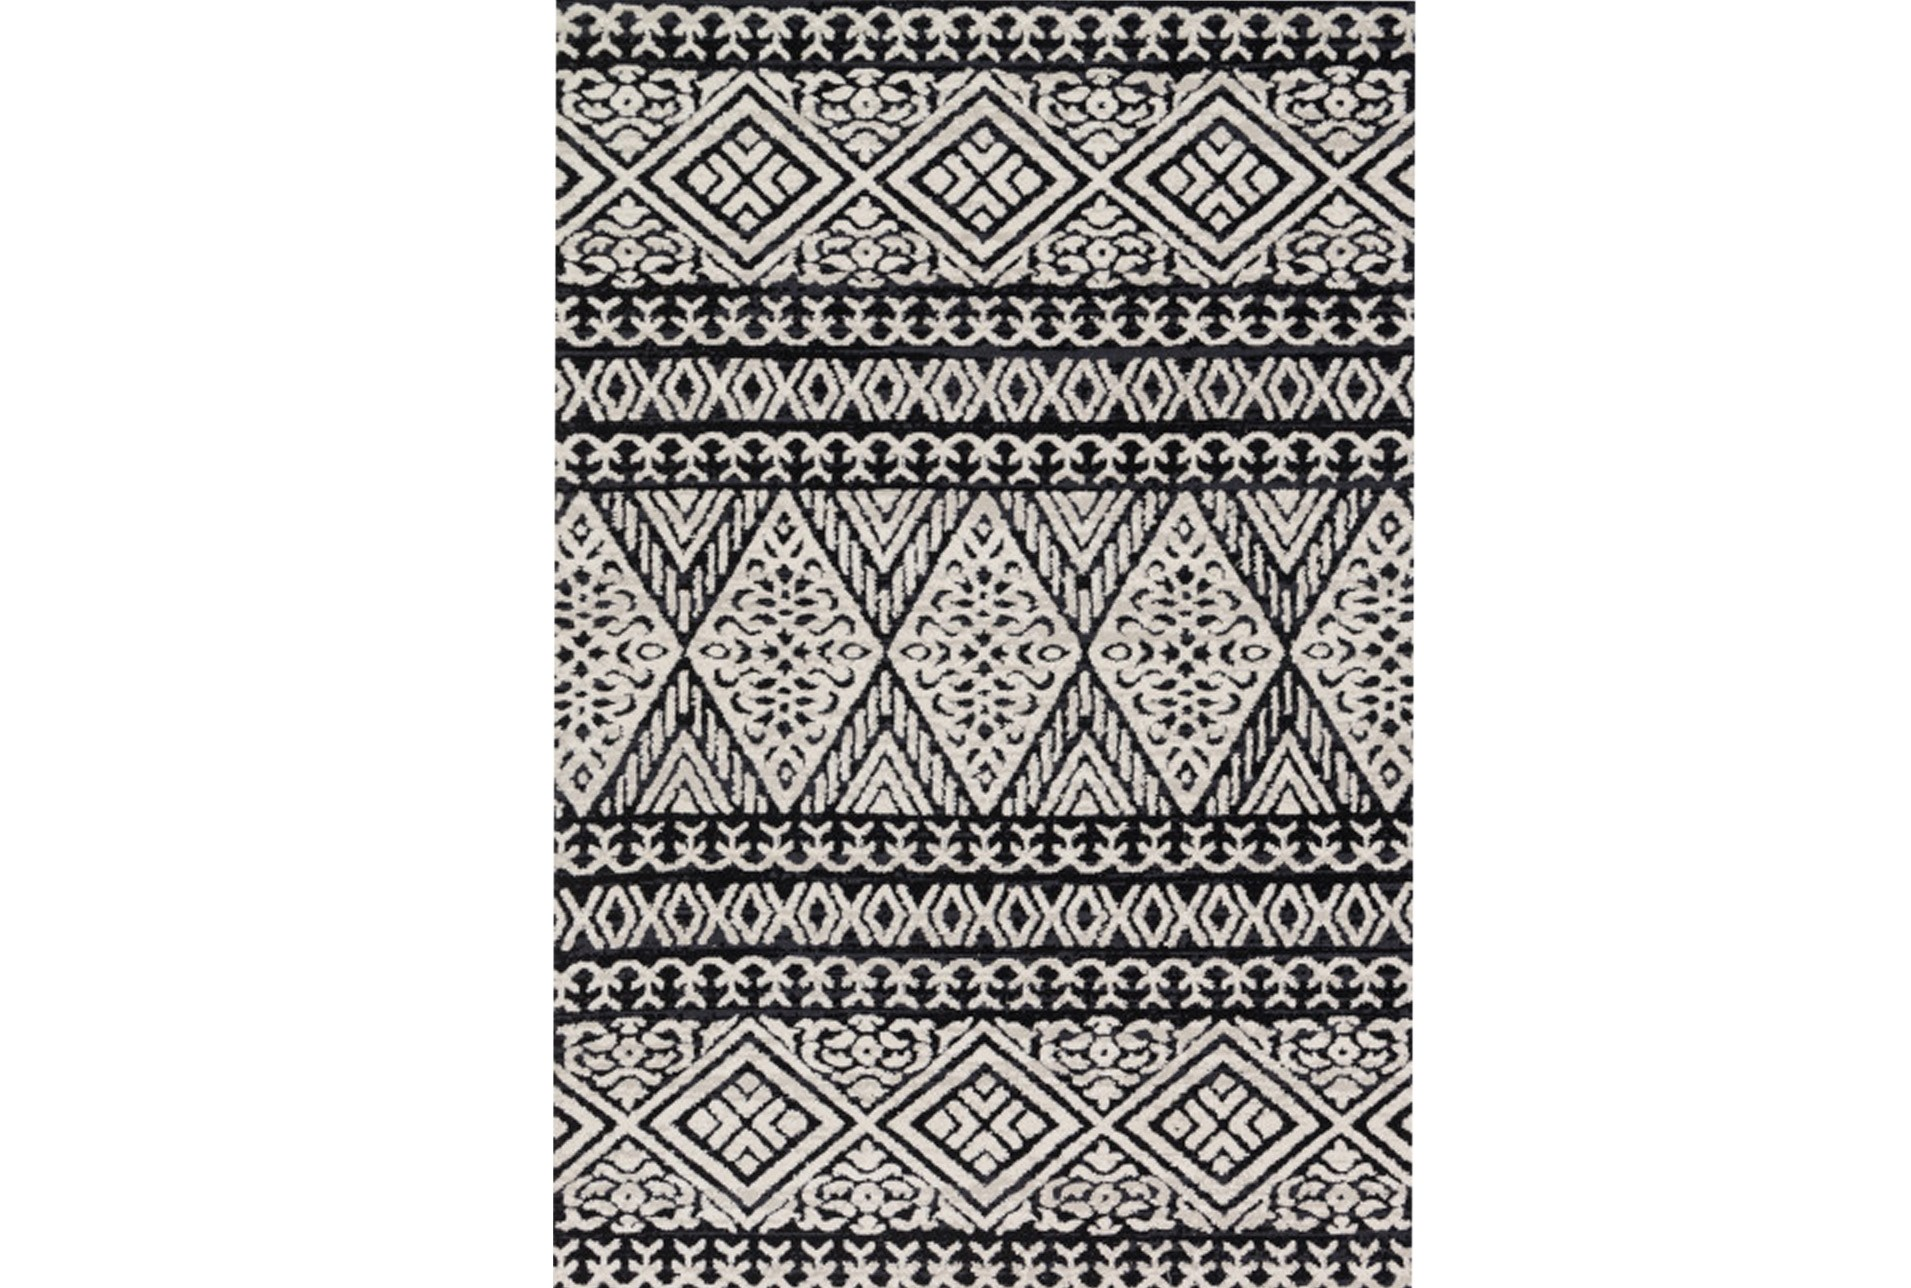 93x117 Rug Magnolia Home Lotus Diamond Black Silver By Joanna Gaines